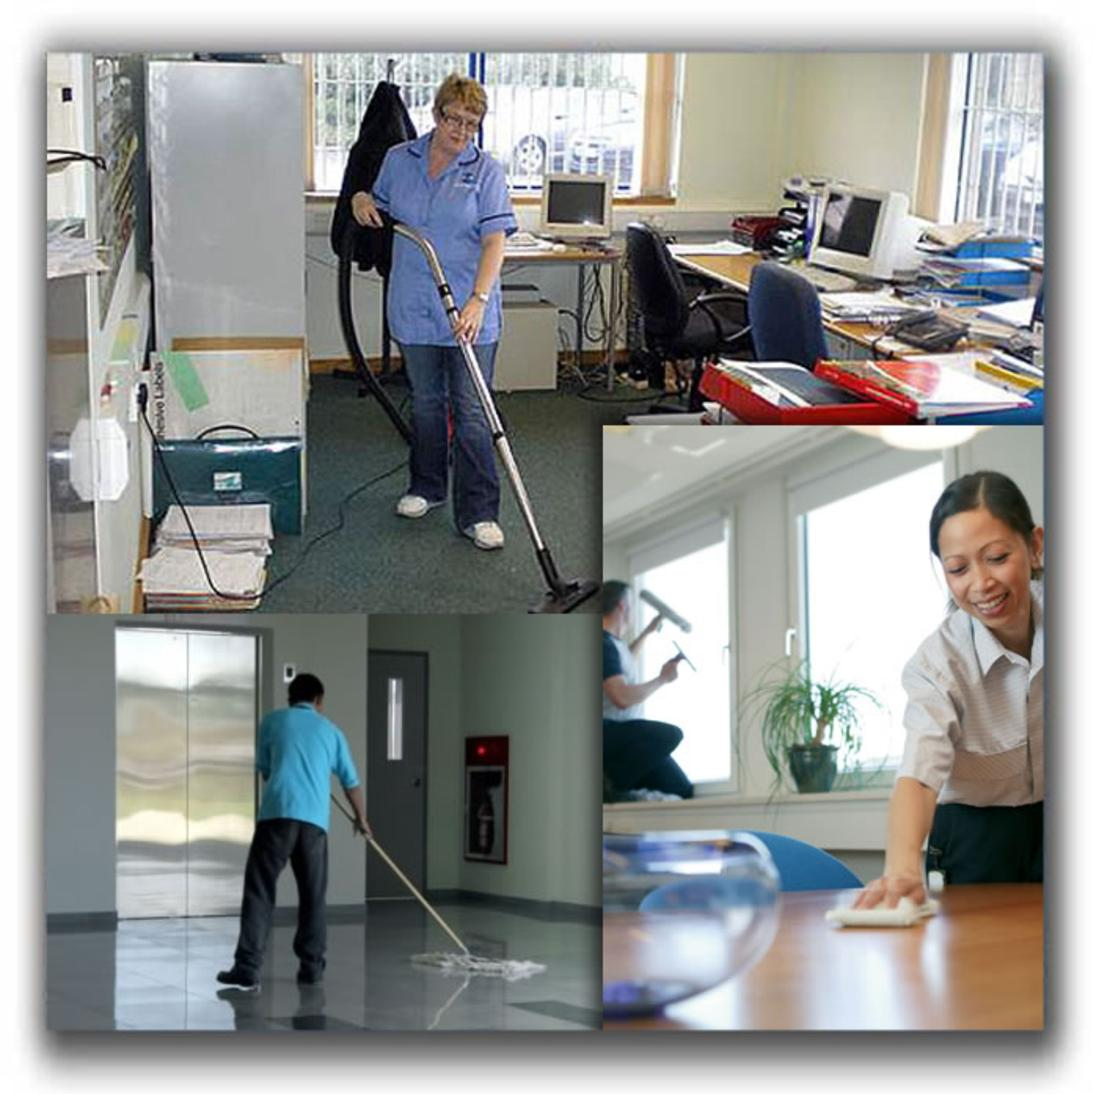 COMMERCIAL CLEANING JANITORIAL SERVICES MERCEDES TX MCALLEN